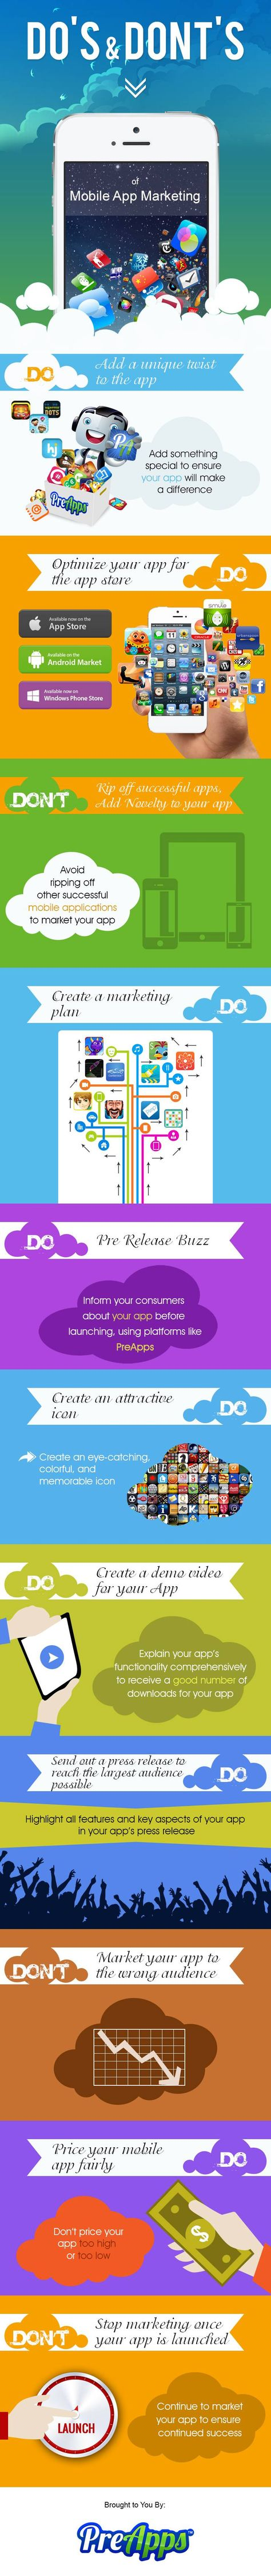 Do's and Dont's of Mobile App Marketing #infographic